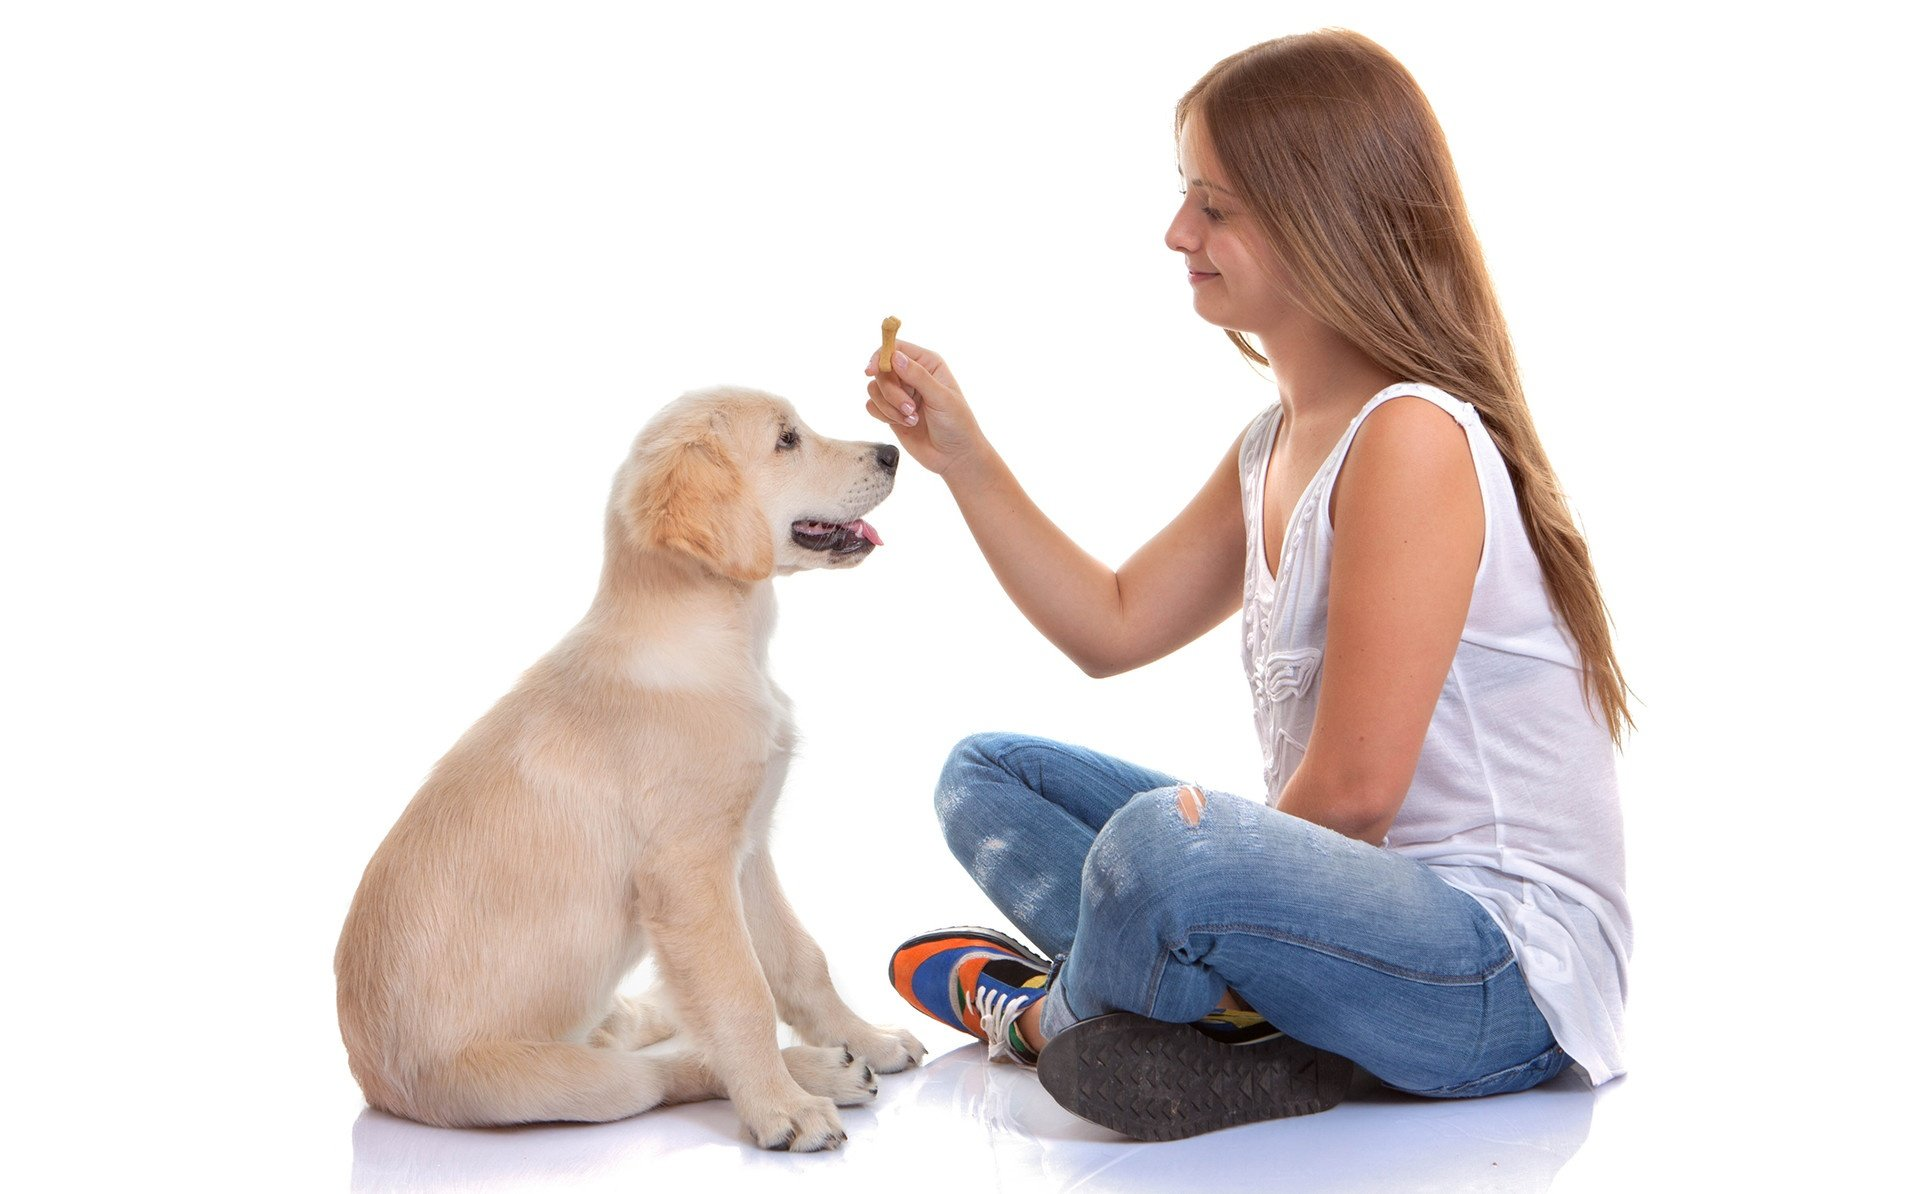 Dog Training The First Steps For Any New Owner